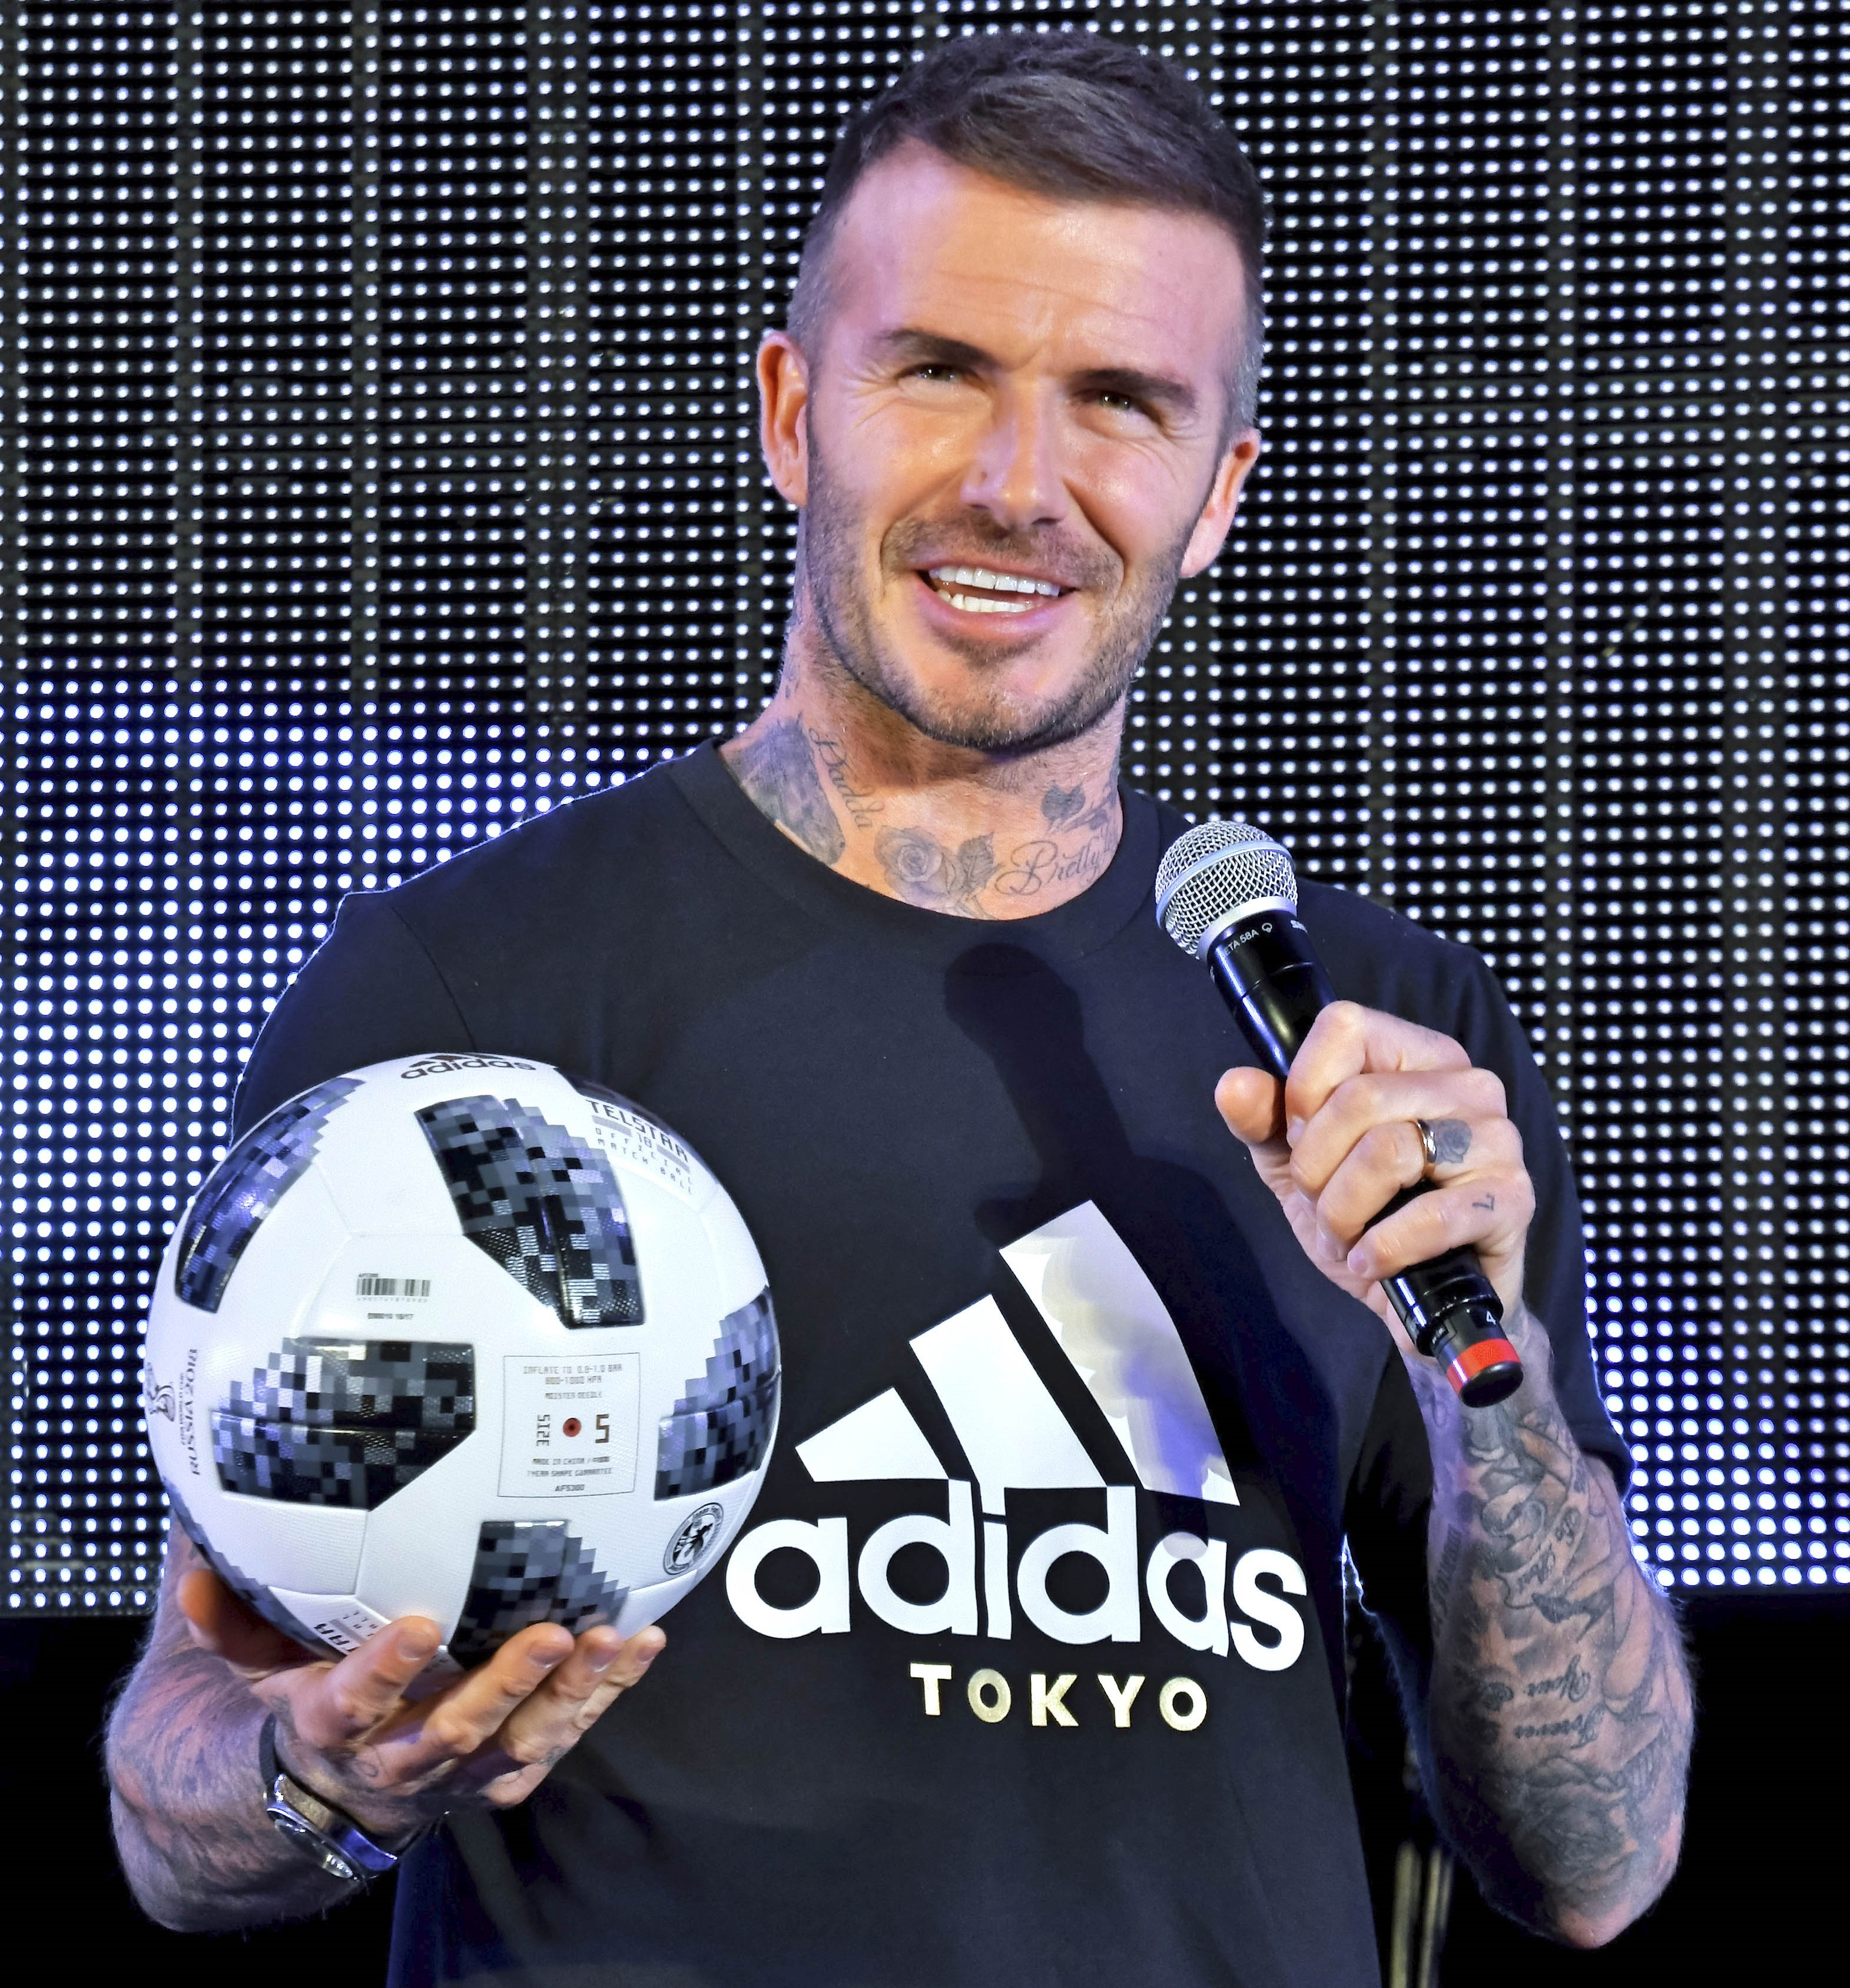 David Beckham showcasing Adidas' triangular mountain logo that represents the challenges athletes face